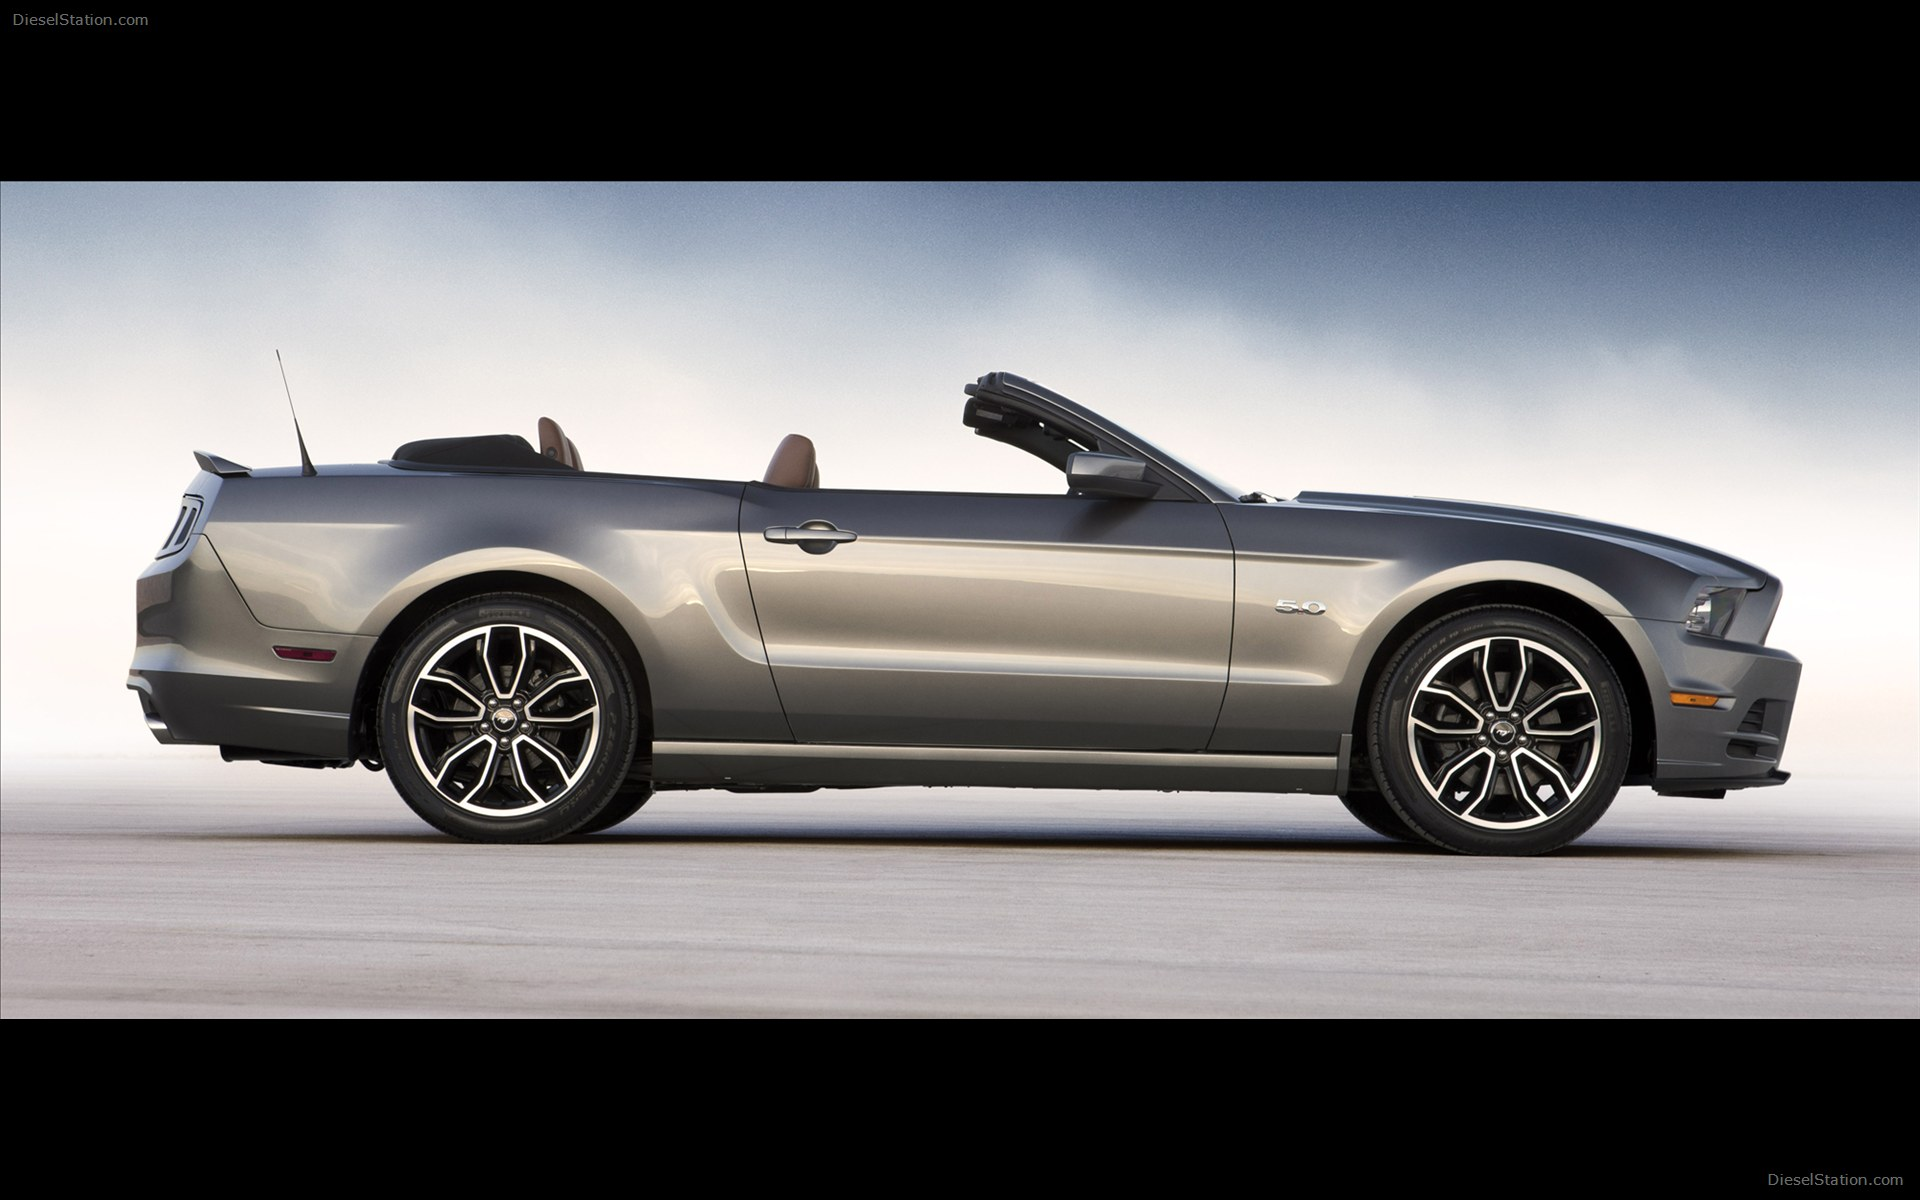 2013 Ford Mustang GT photo - 1